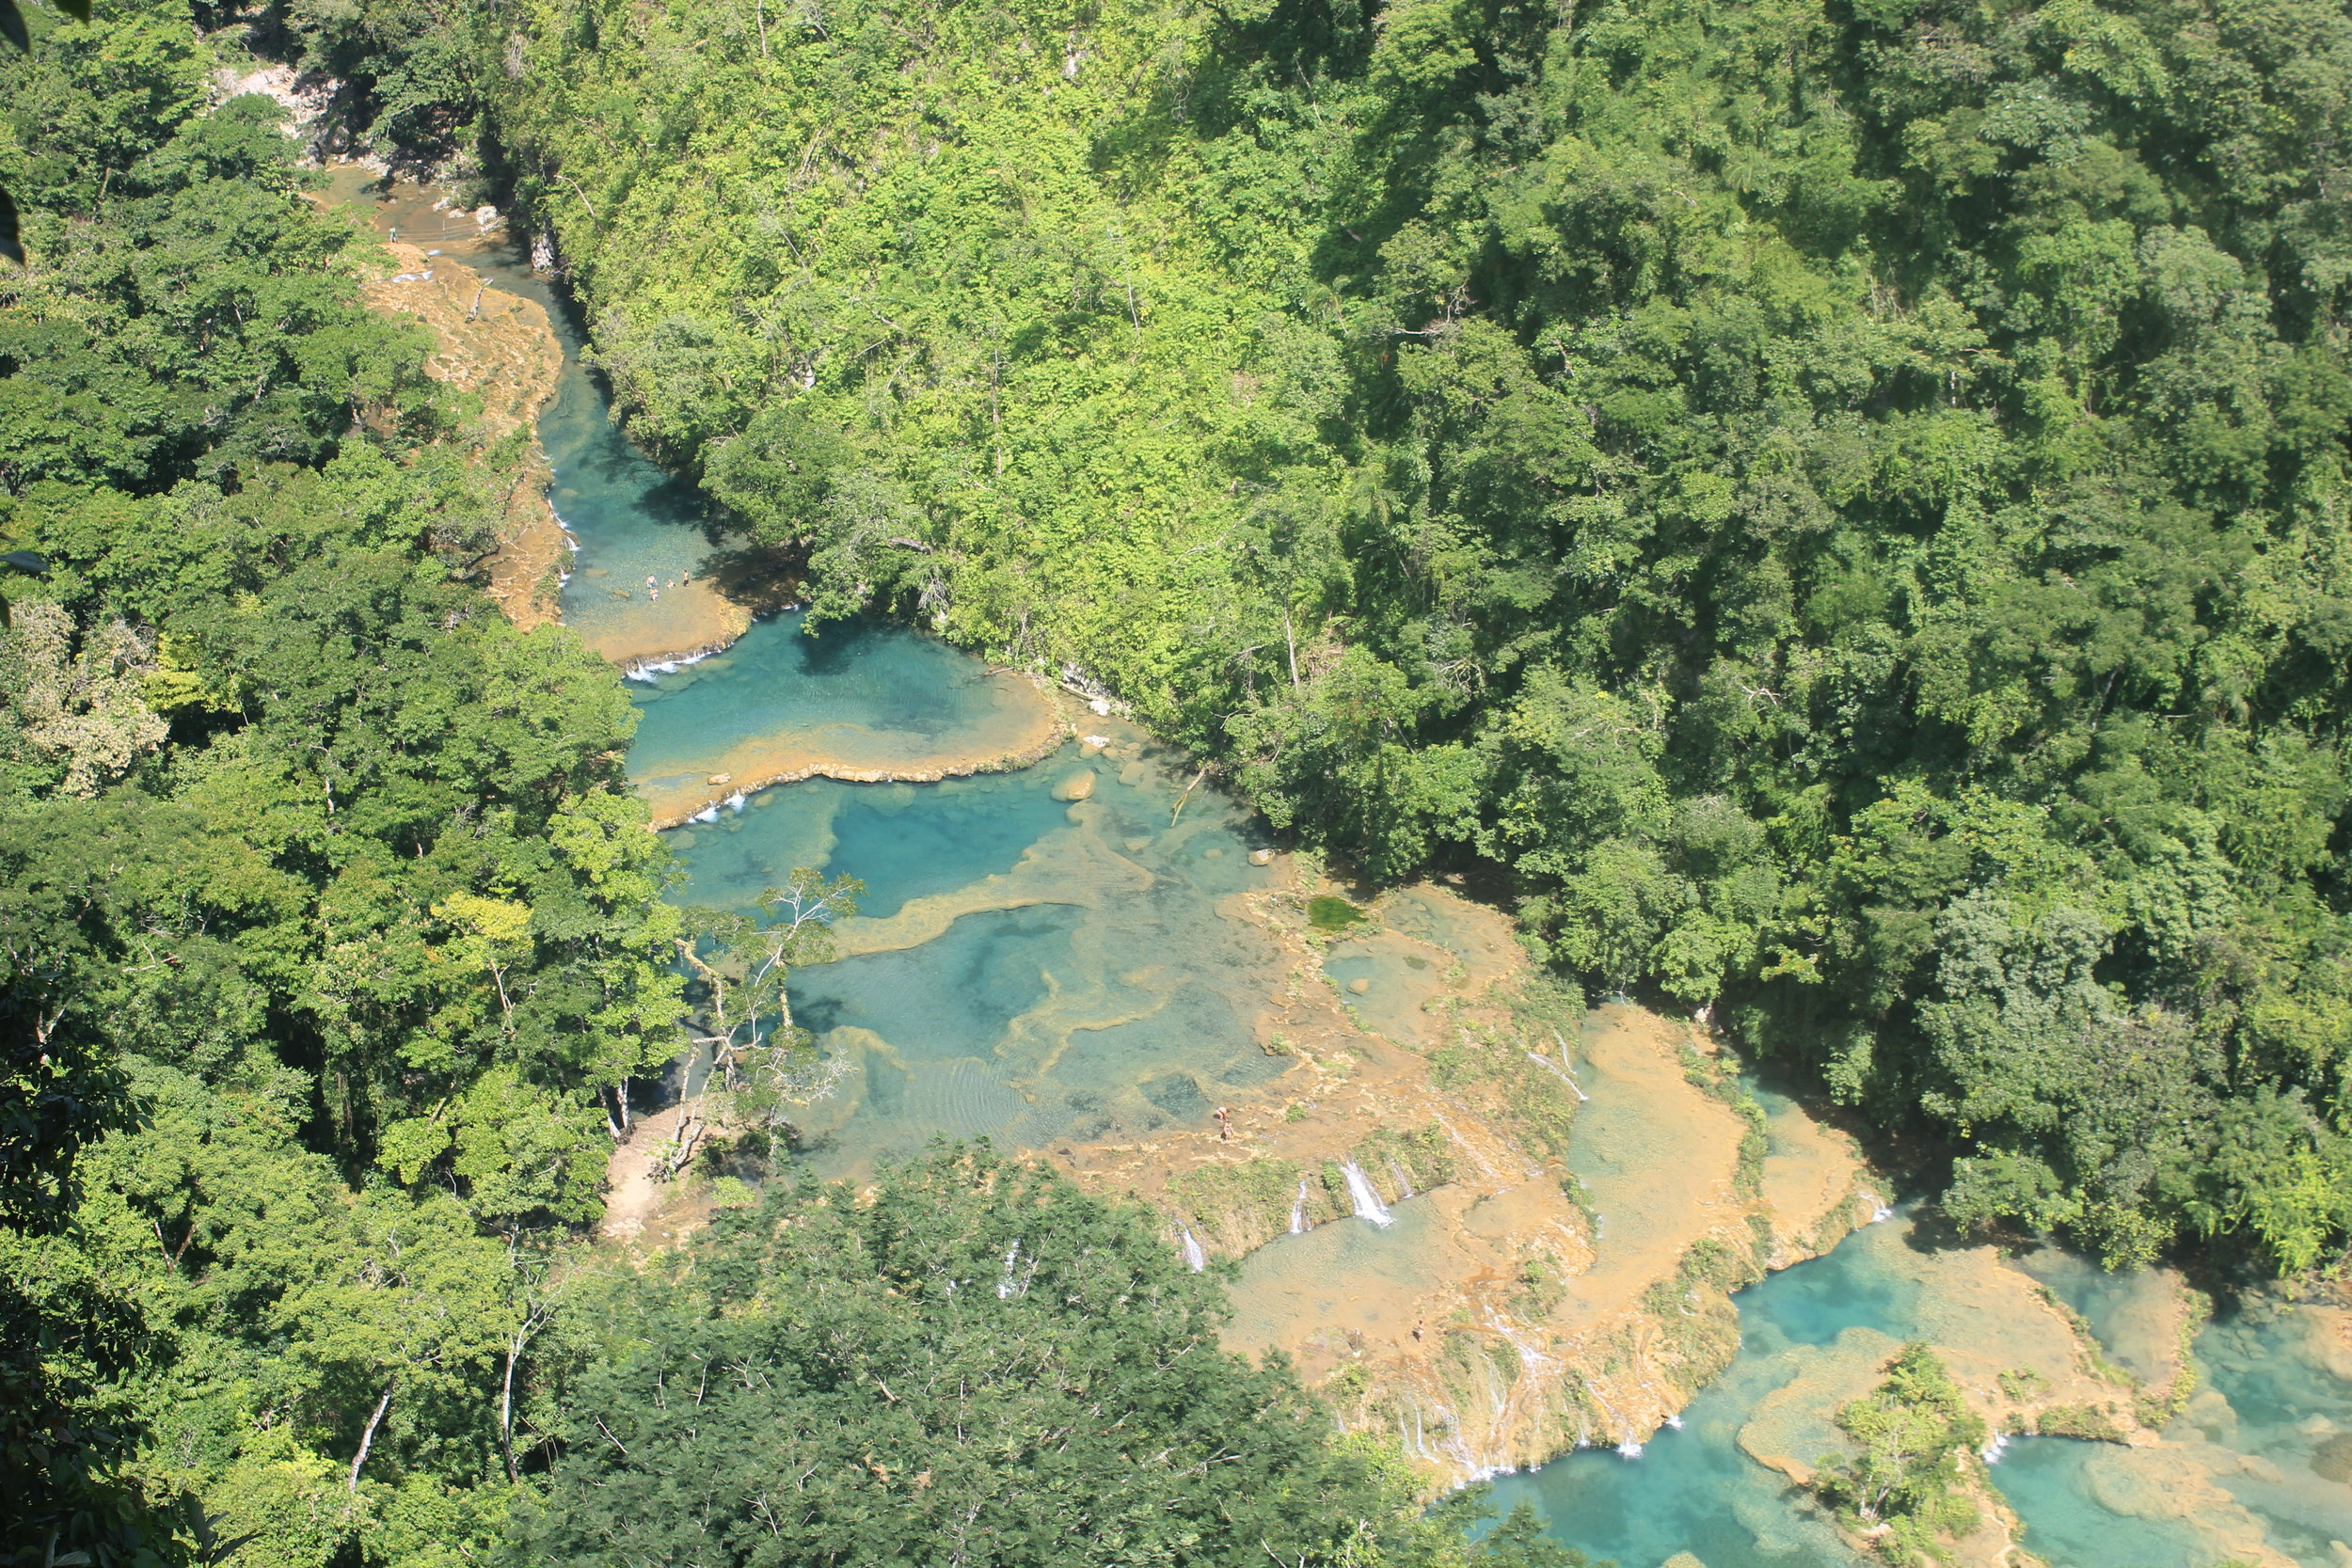 The views from the look out at Semuc Champey